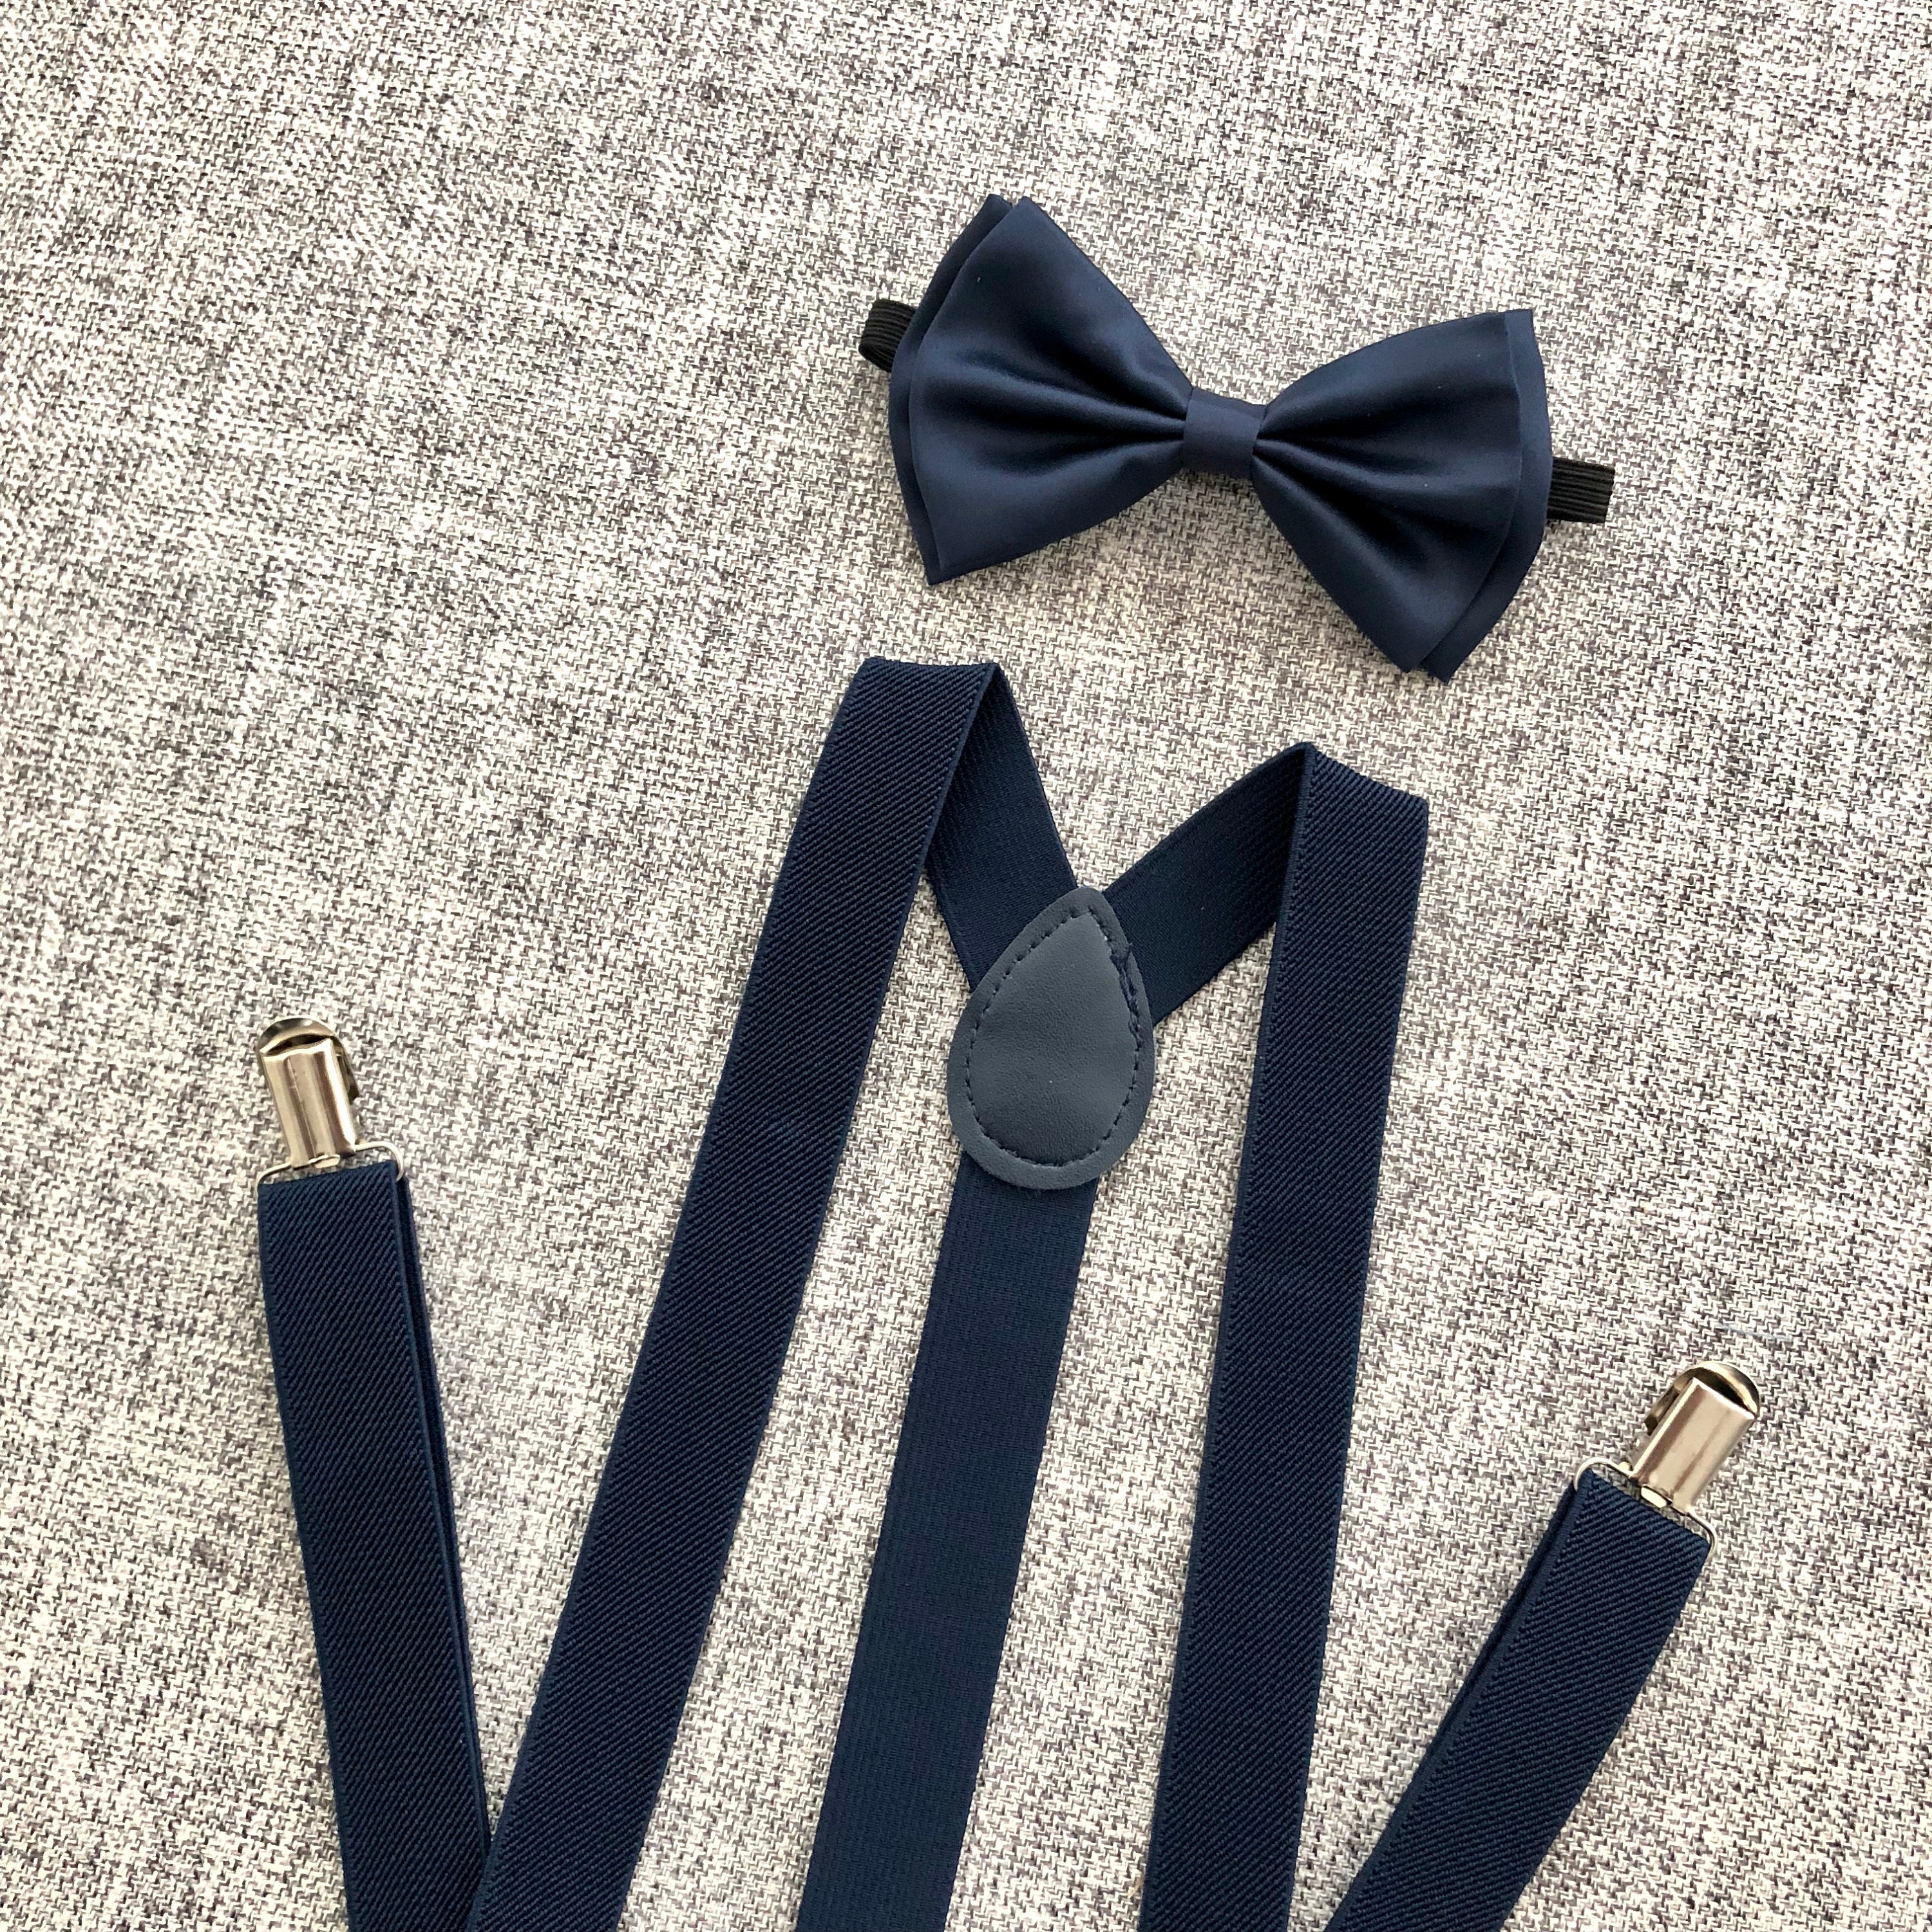 Adult Navy Anchor Logo Suspenders and Bow Tie Set Adjustable Wedding Prom